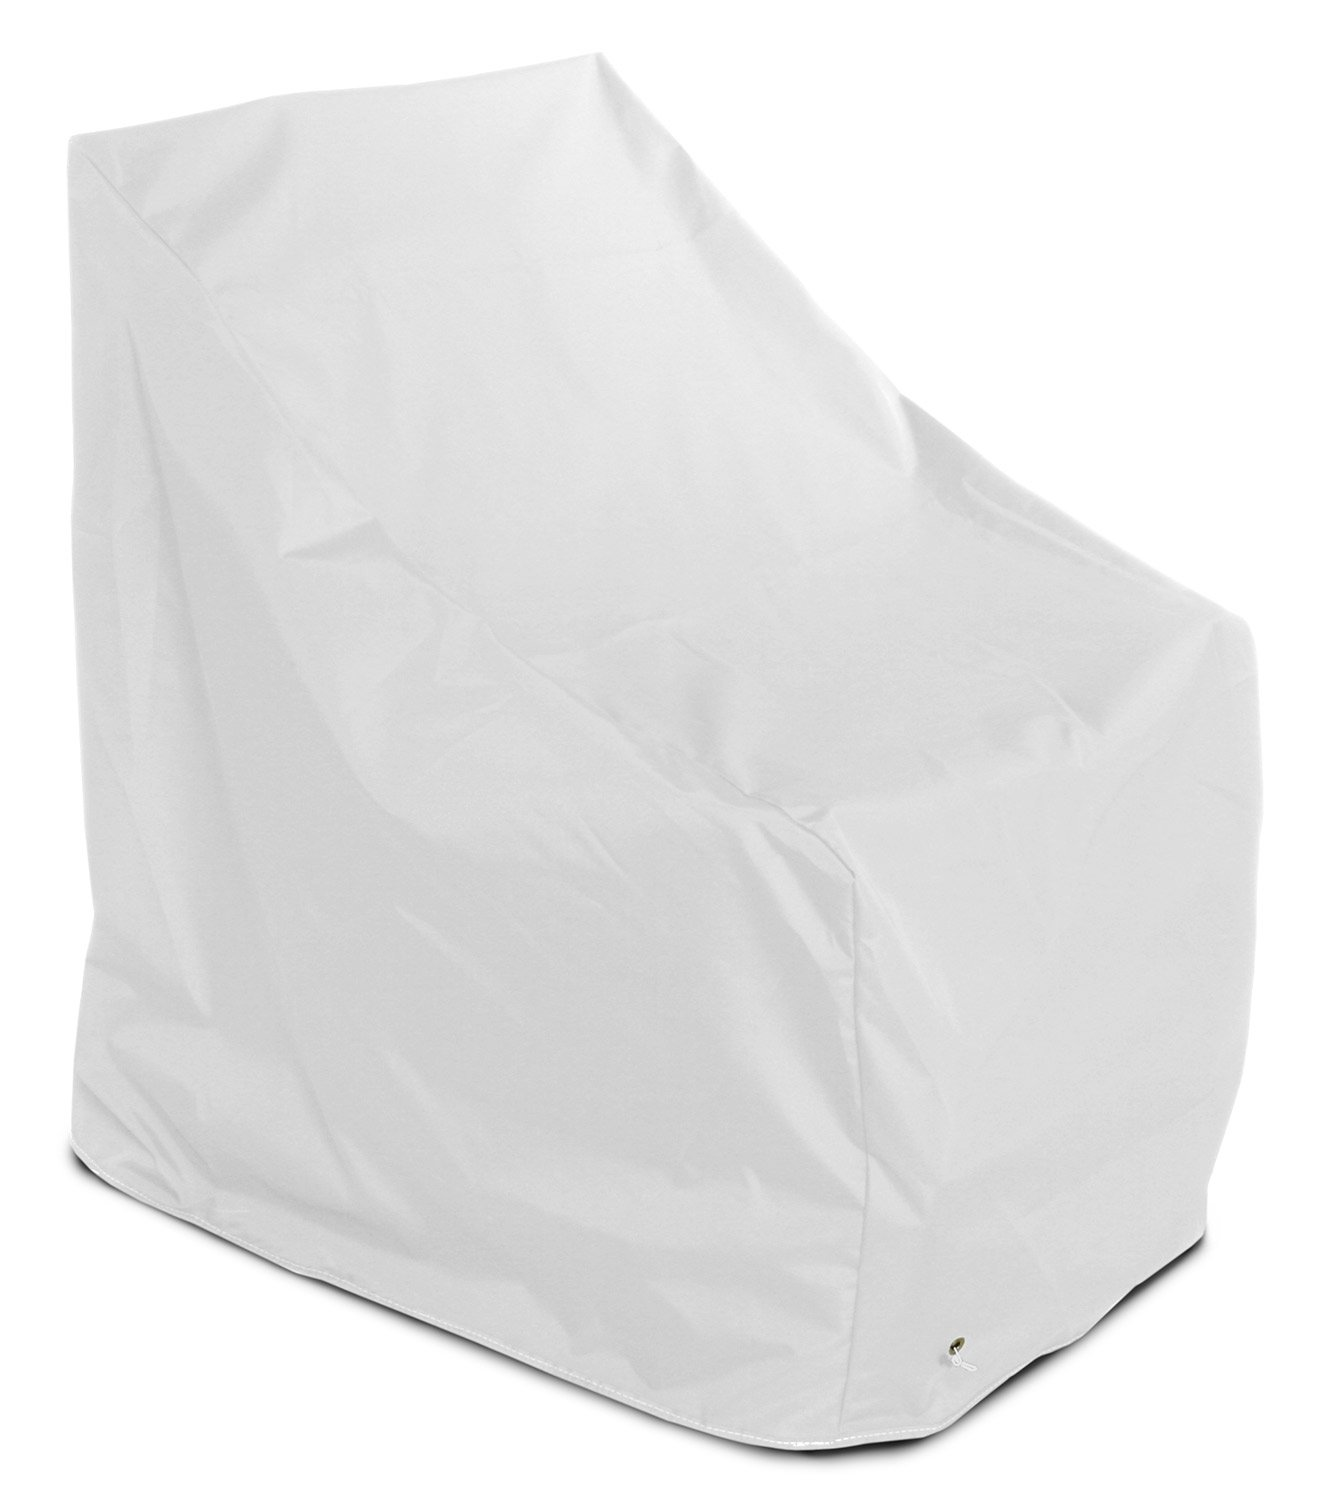 KoverRoos Weathermax 12750 Adirondack Chair Cover, 40-Inch Width by 37-Inch Diameter by 41-Inch Height, White